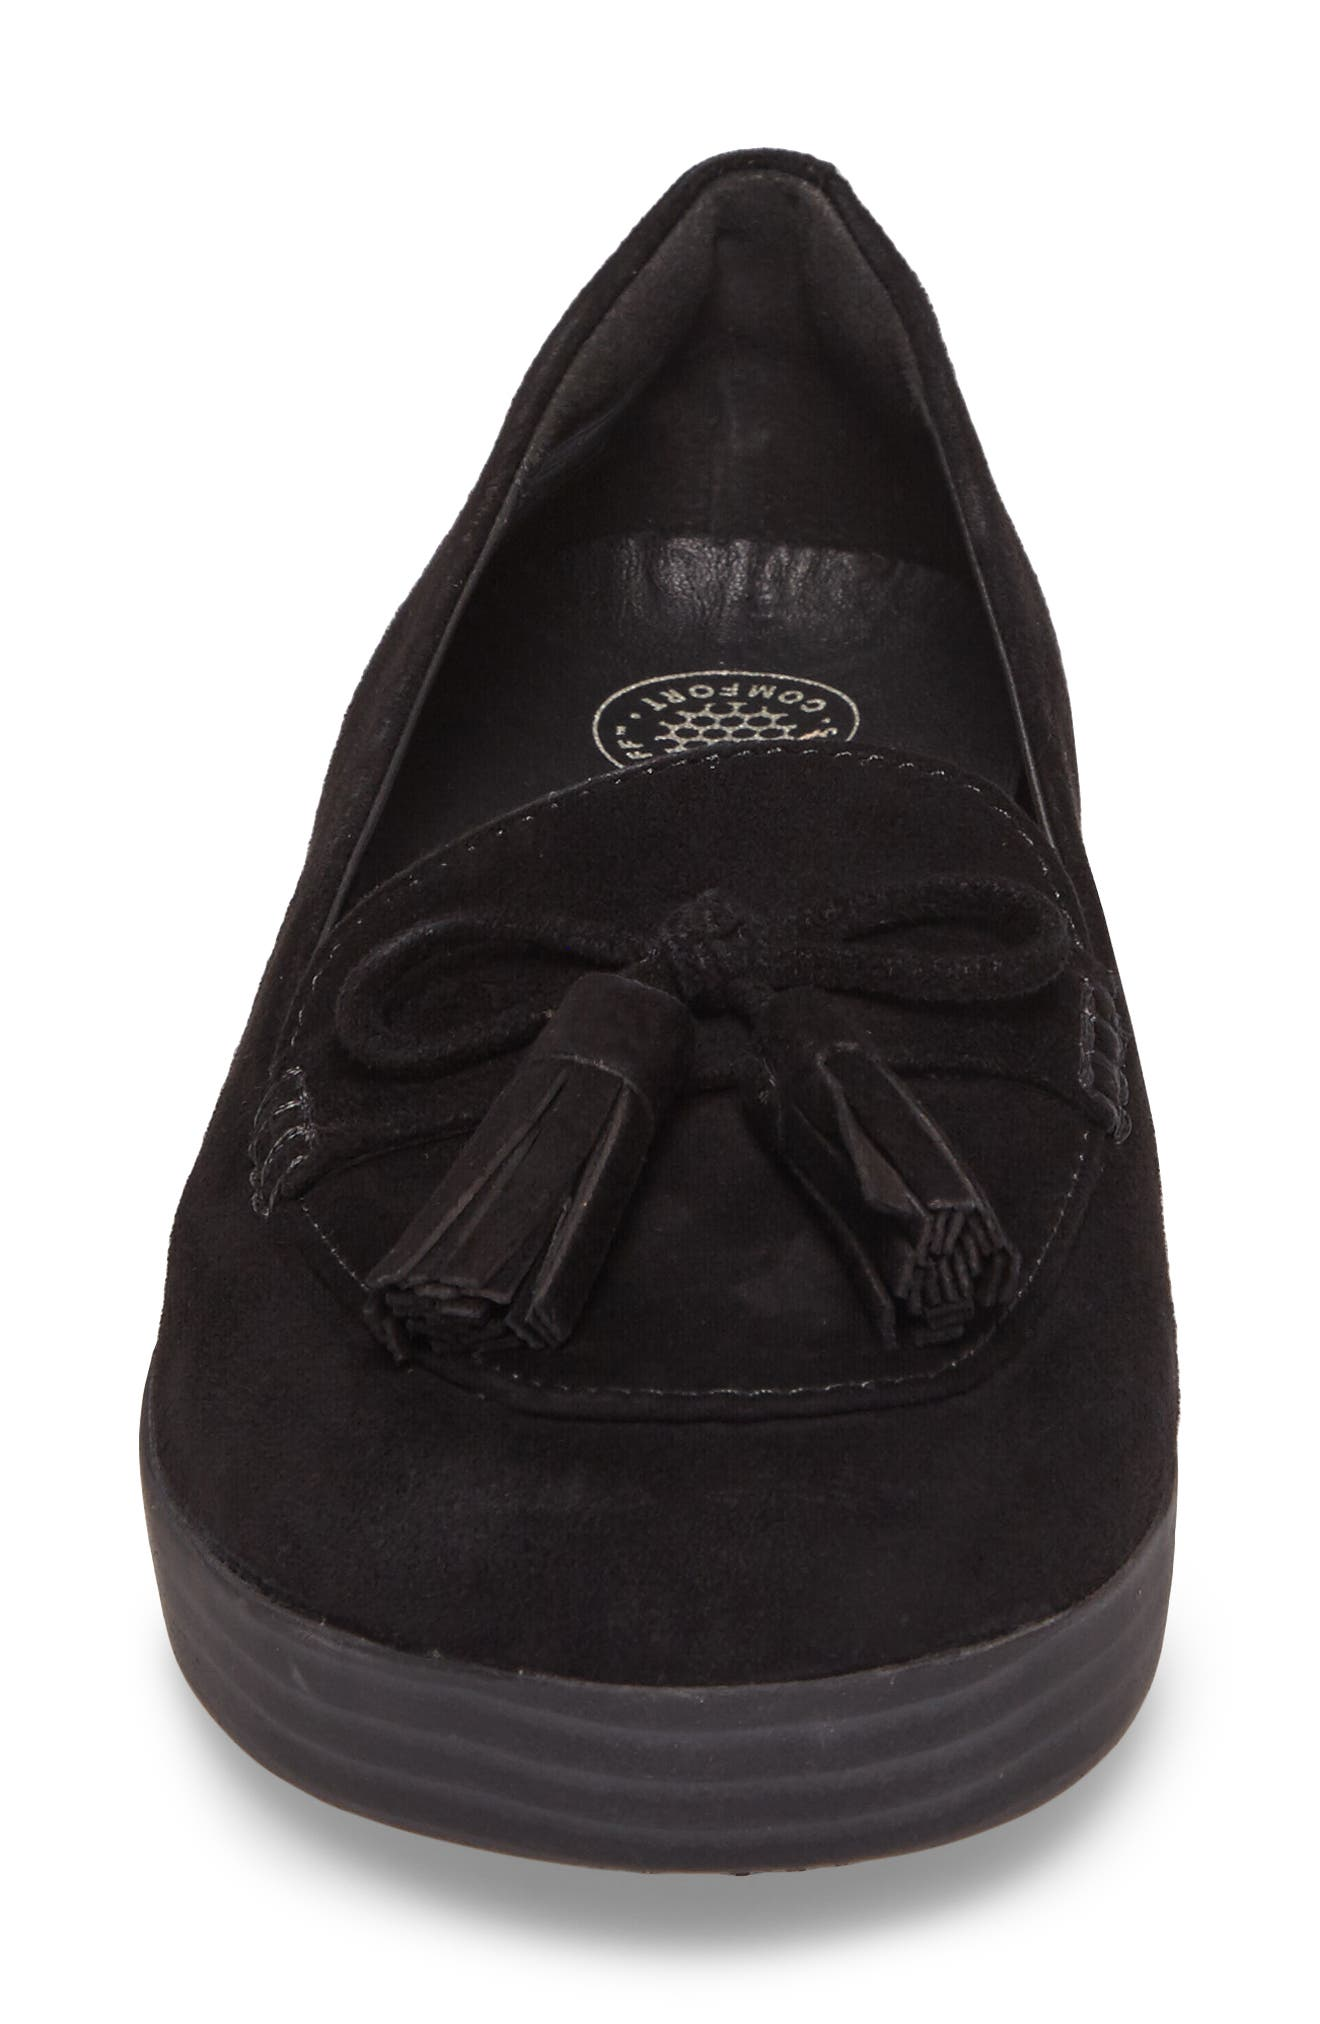 Tassel Bow Sneakerloafer<sup>™</sup> Water Repellent Flat,                             Alternate thumbnail 4, color,                             All Black